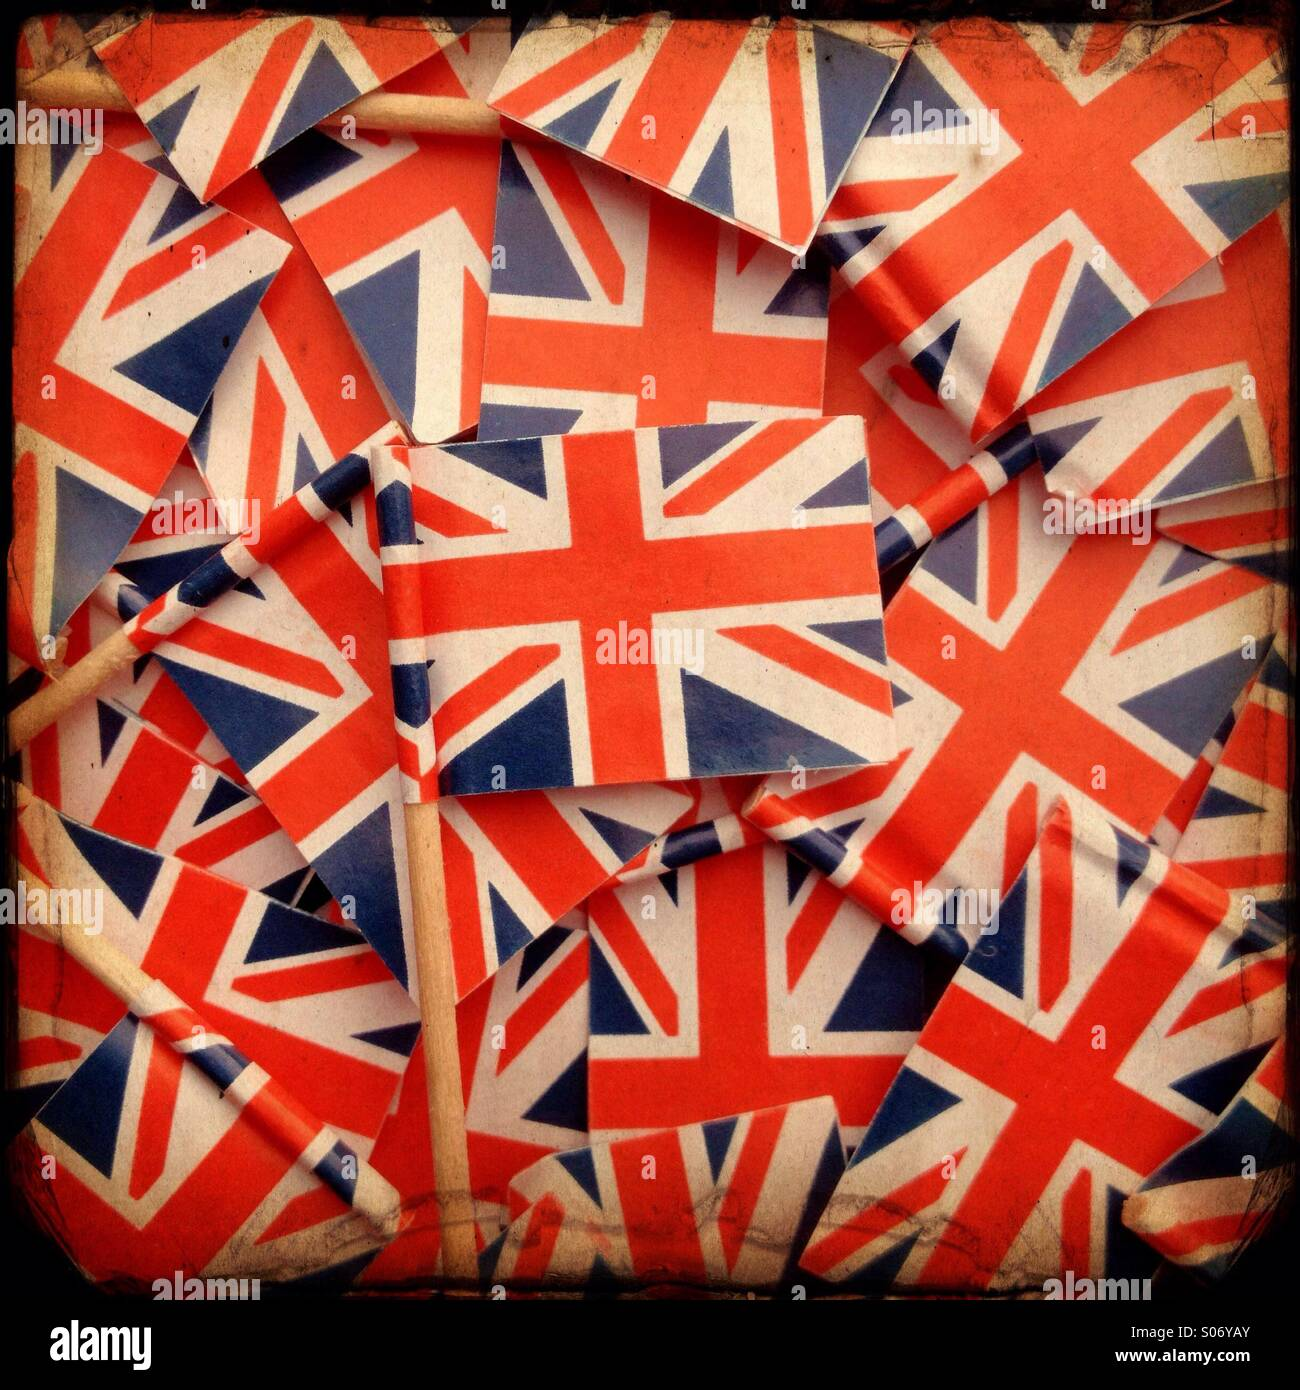 Union Jack cocktail sticks arranged to make a background with a vintage texture effect - Stock Image